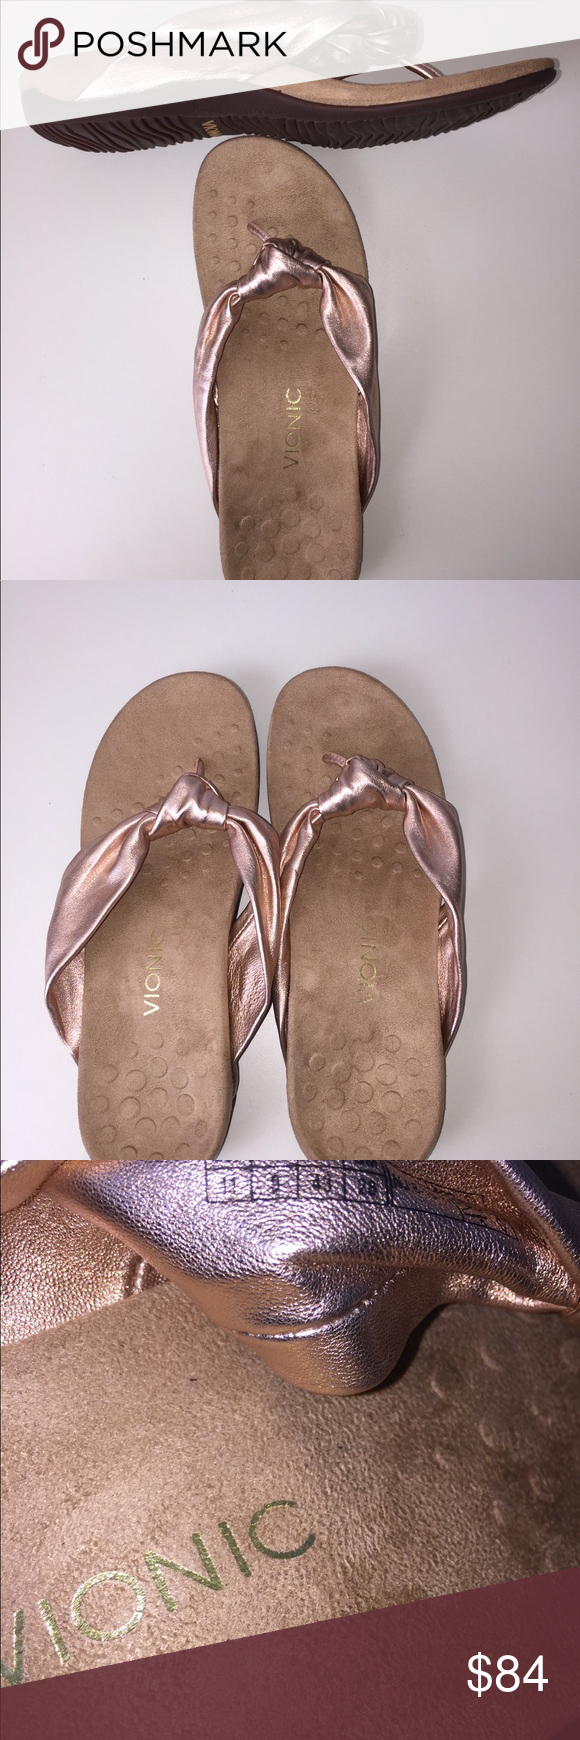 3aa4df993ff062 Vionic Pippa Rose Gold Leather Flip Flop New Size 11 thong sandal ...